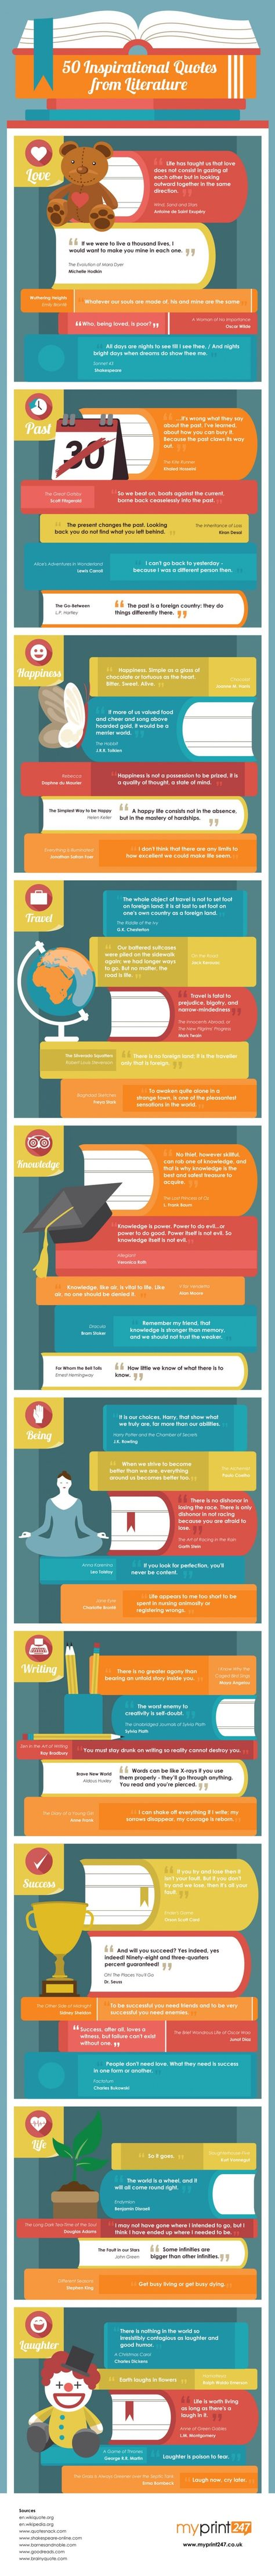 #Infographic 50 inspirational quotes from #books - which one you love